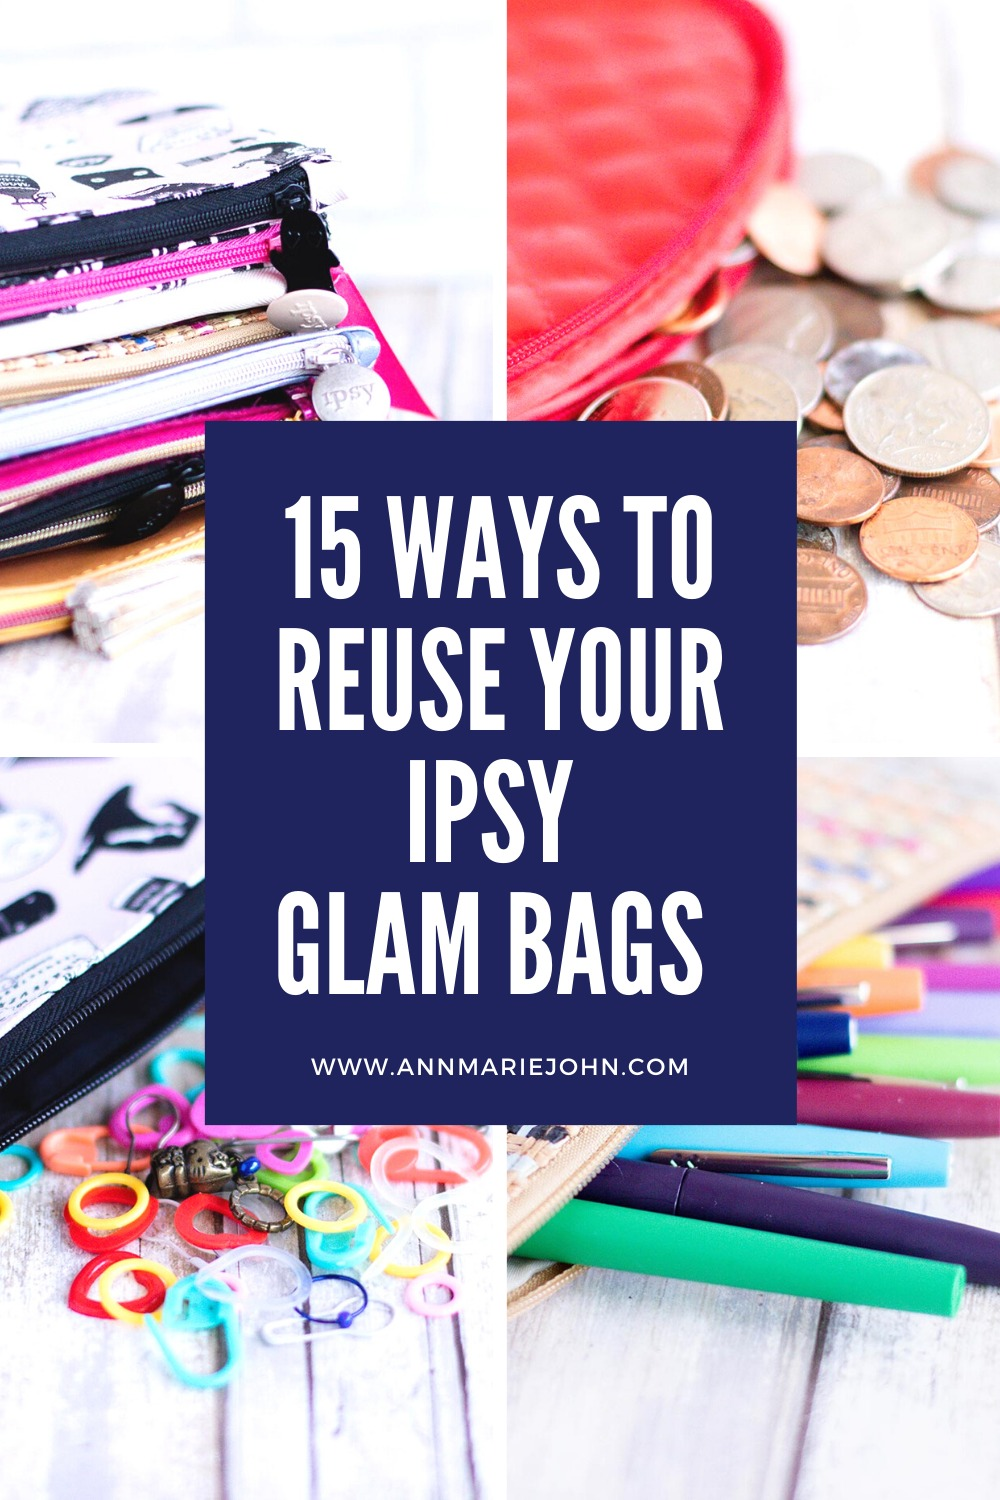 15 Ways to Reuse your Ipsy Glam Bags